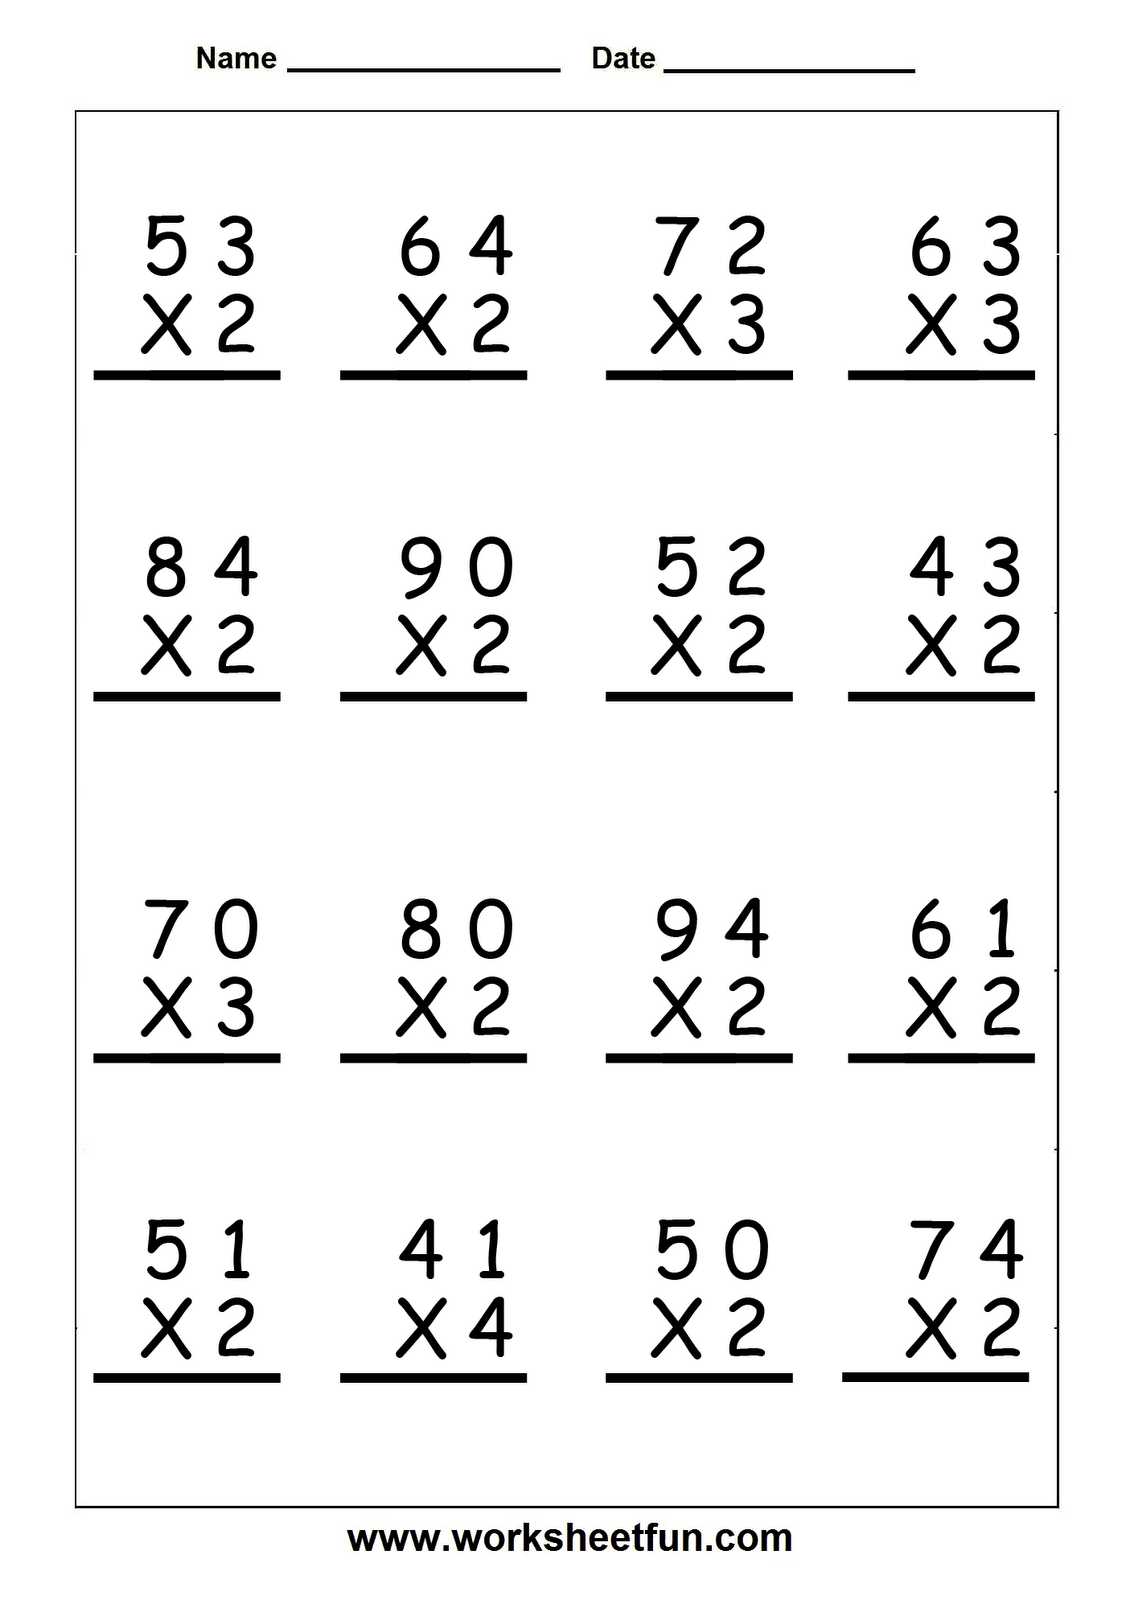 small resolution of multiplication worksheets grade 5 - Google Search   Math fact worksheets